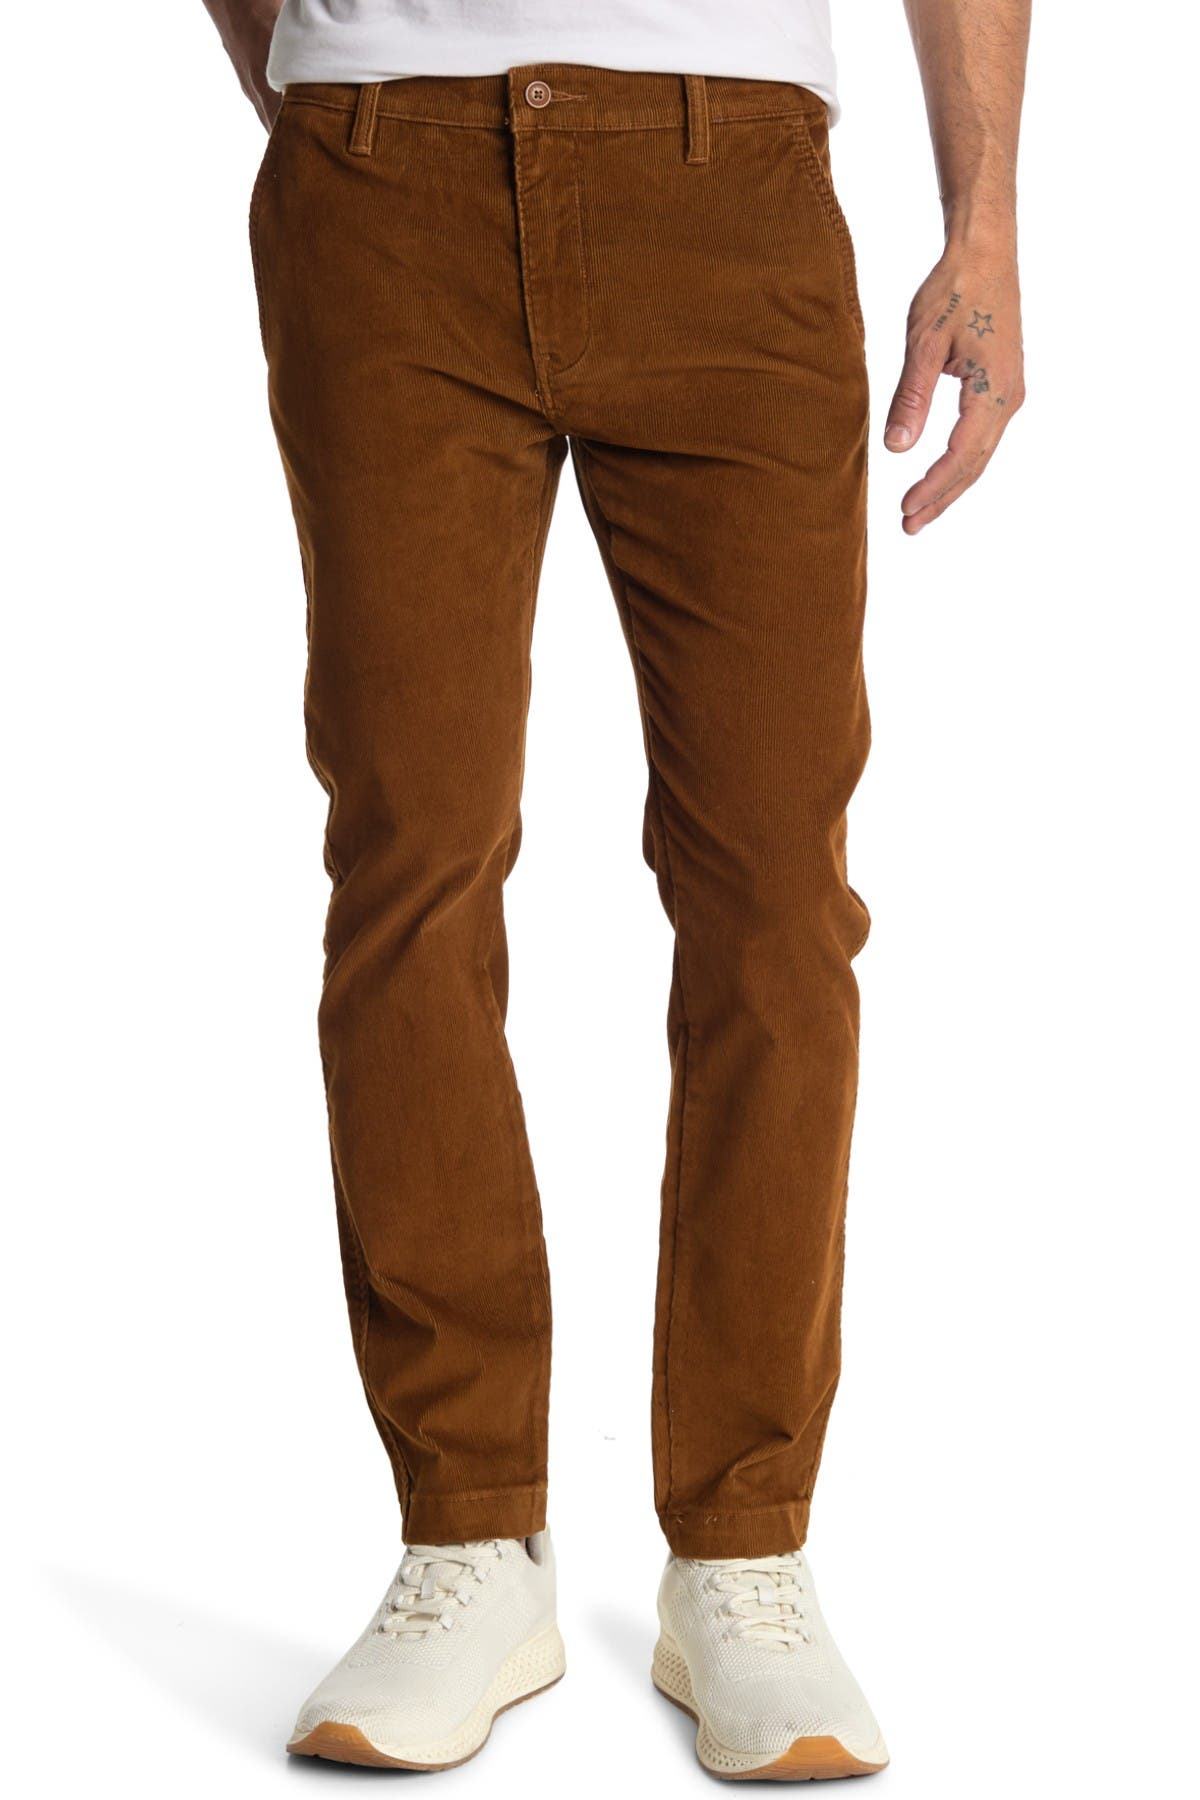 "Image of Levi's Chino Standard Tapered Leg Pants - 29-34"" Inseam"